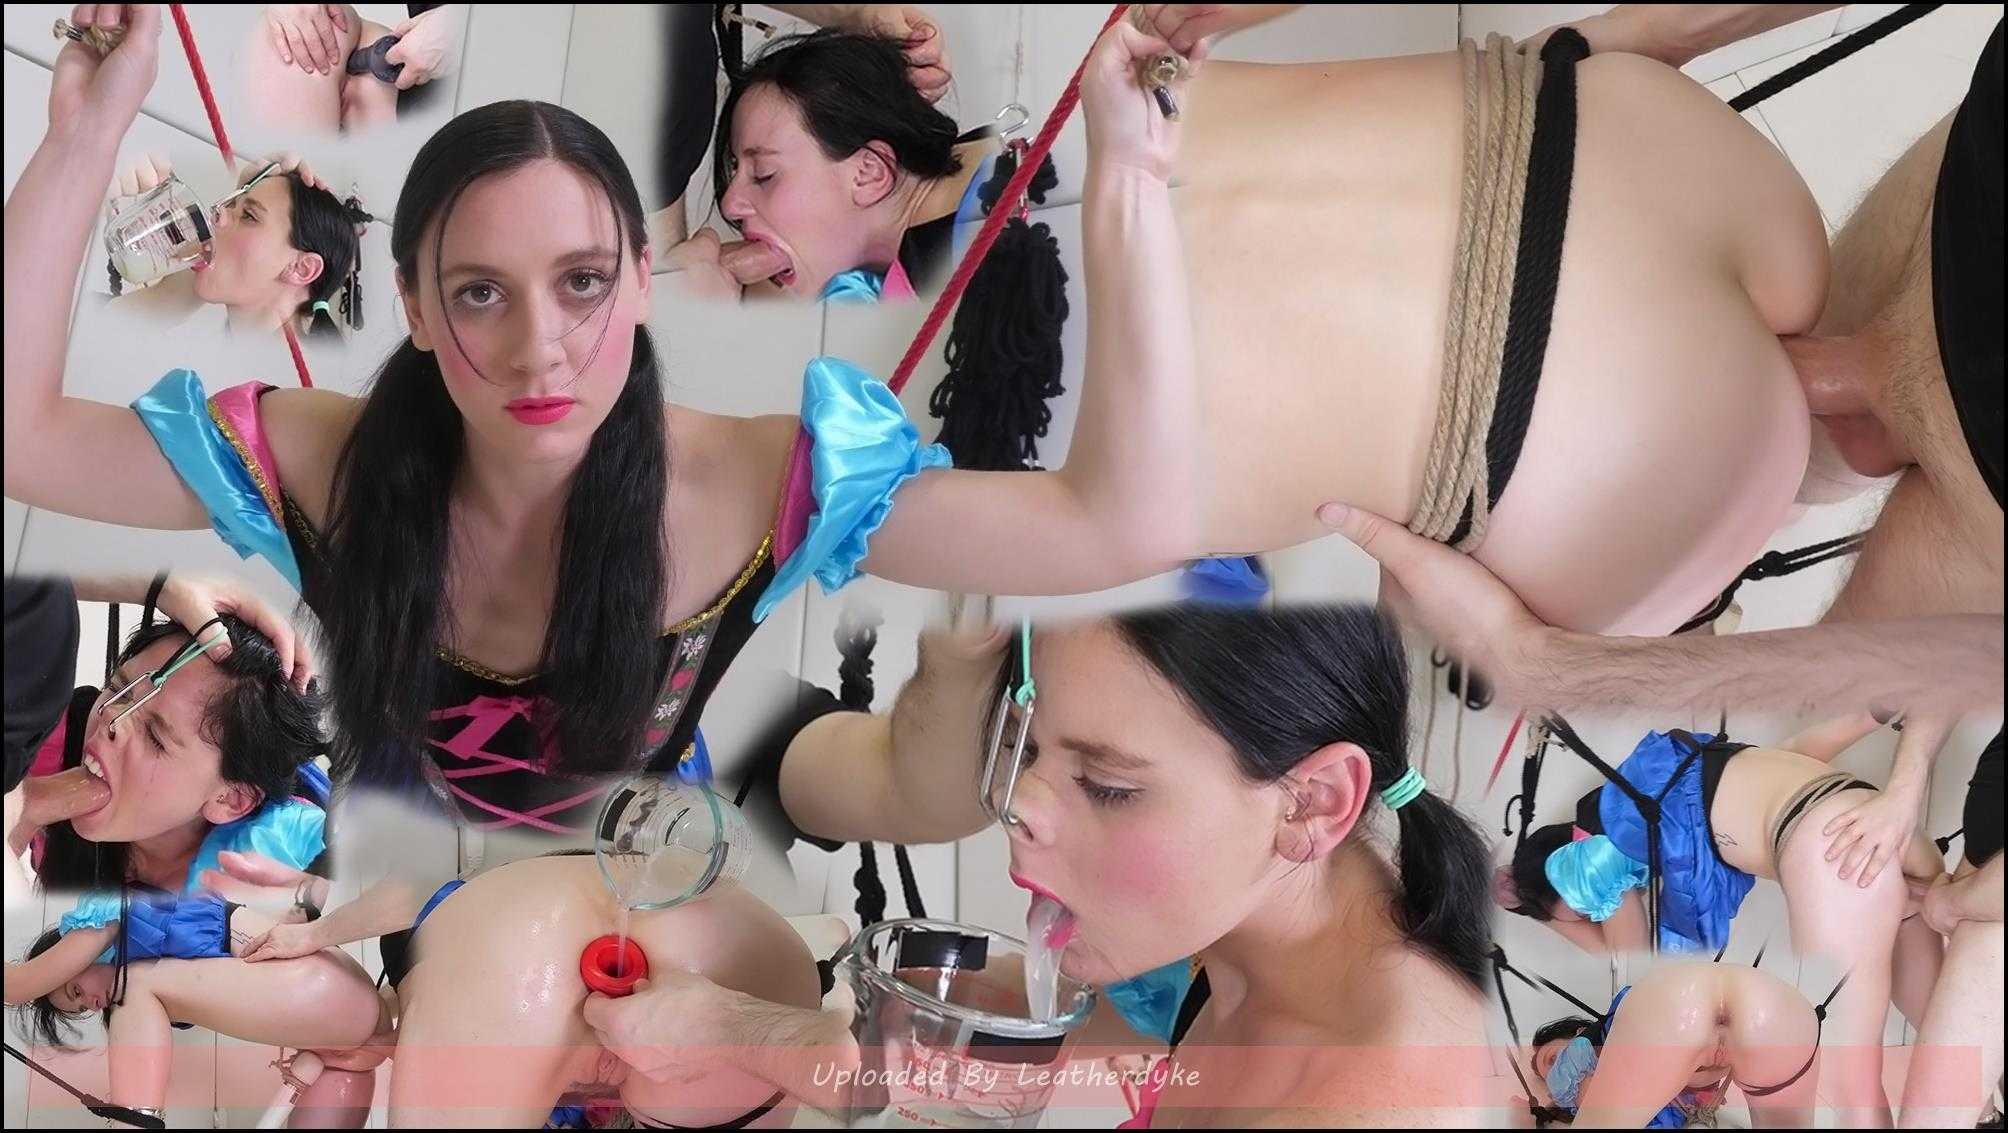 Lesbian Anal Sperm Puppet with Audrey Holiday | Full HD 1080p | Oct 17, 2018